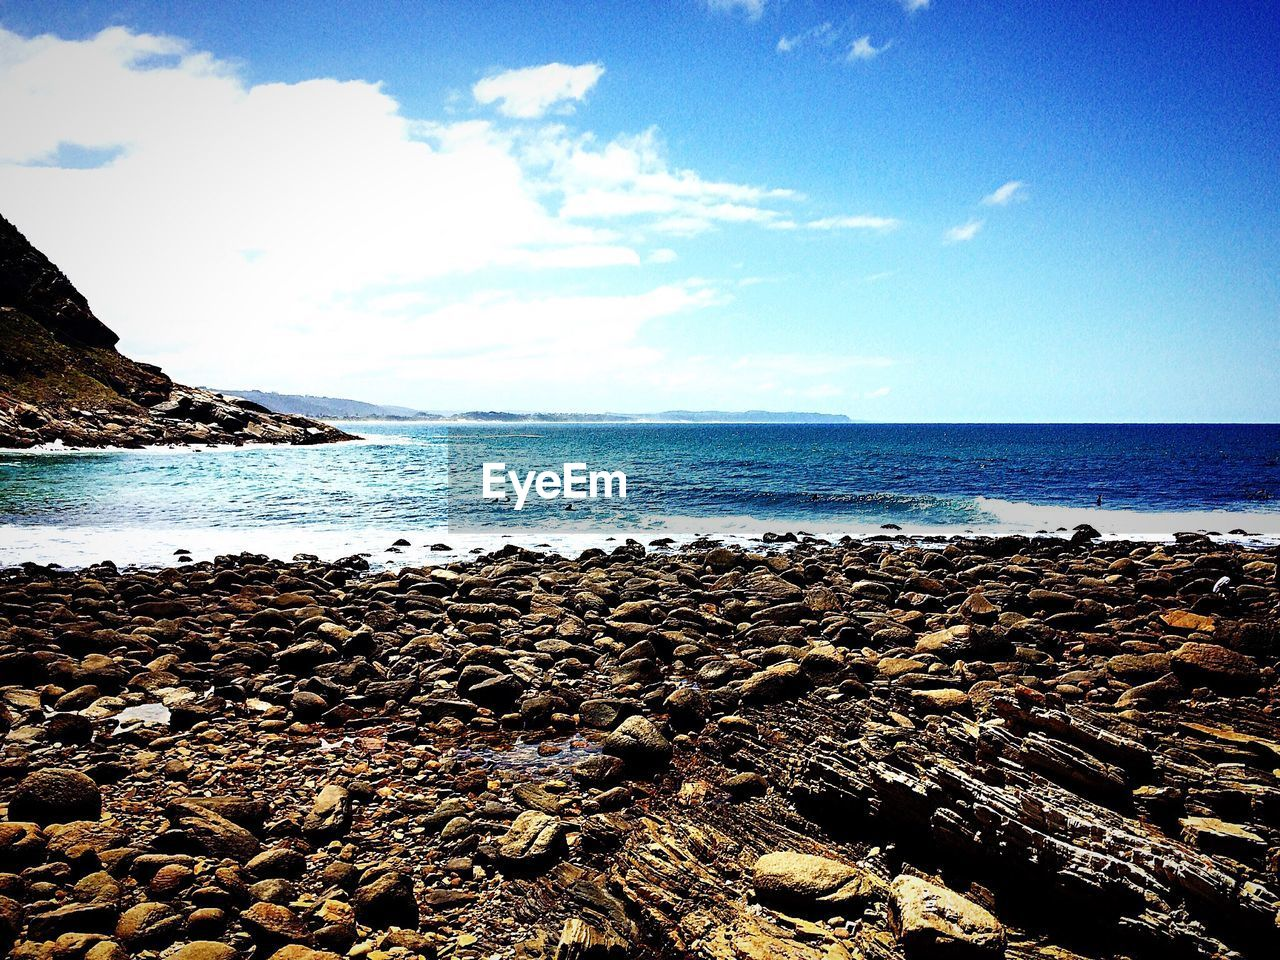 sea, beach, horizon over water, sky, no people, nature, tranquility, day, tranquil scene, beauty in nature, scenics, water, outdoors, pebble beach, close-up